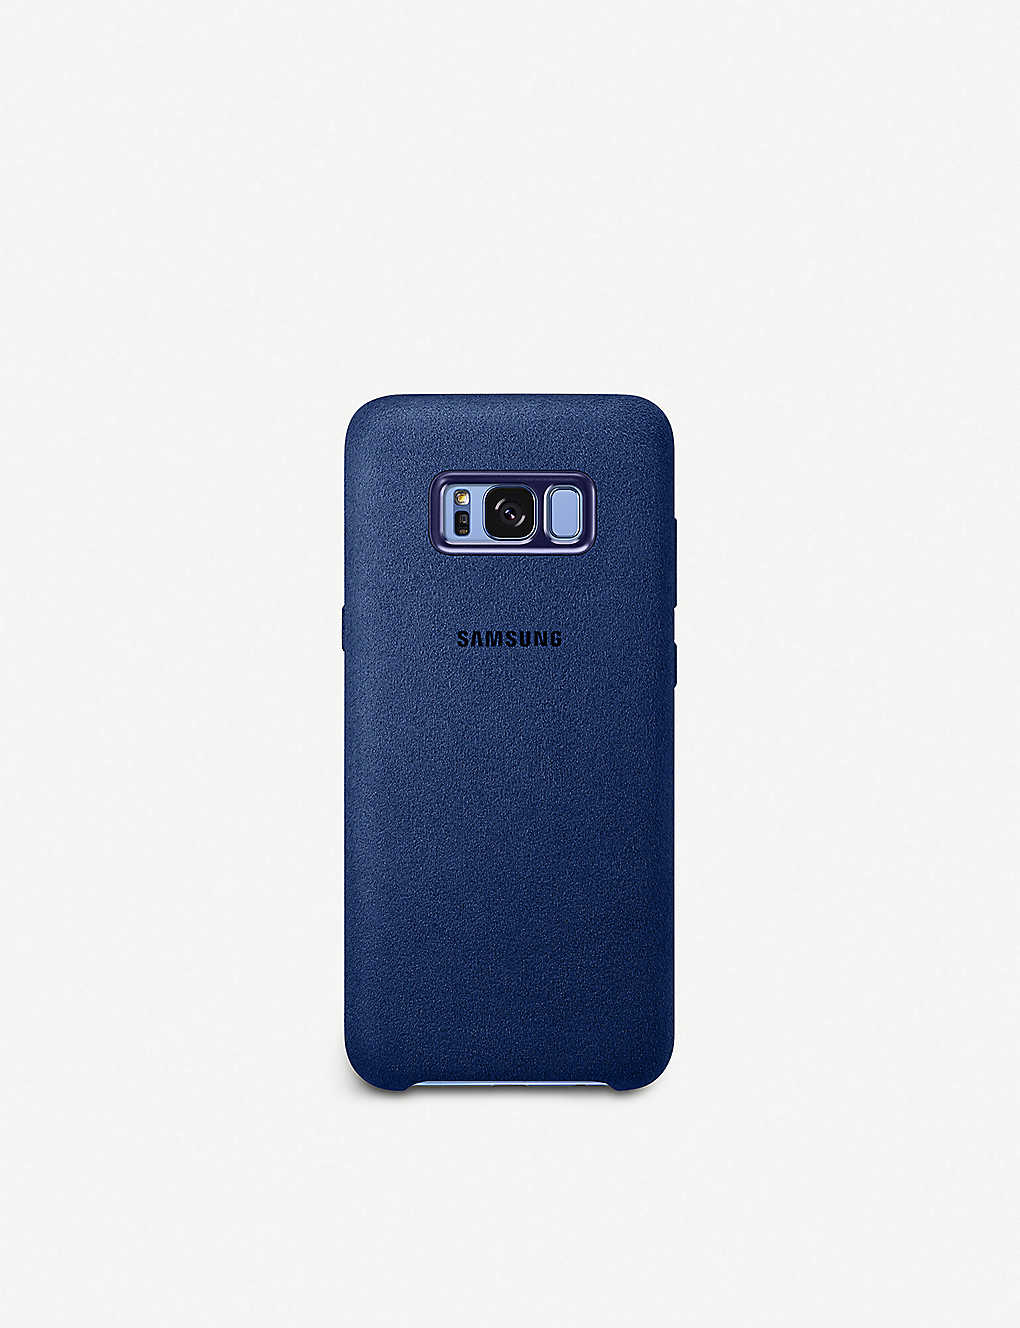 hot sale online 754e6 0550c Galaxy S8+ Alcantara back cover